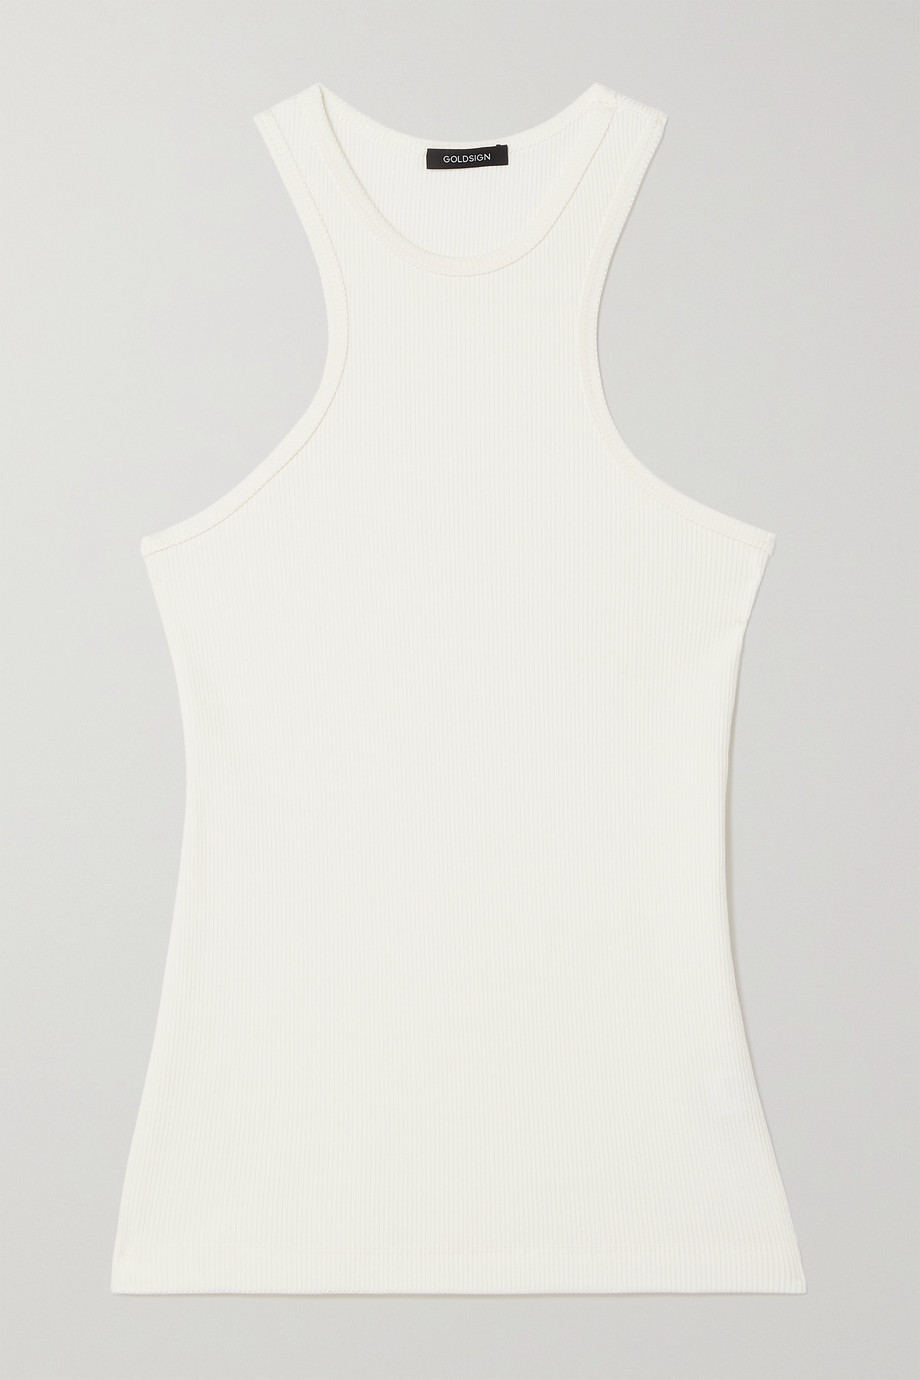 GOLDSIGN Ribbed stretch-jersey tank